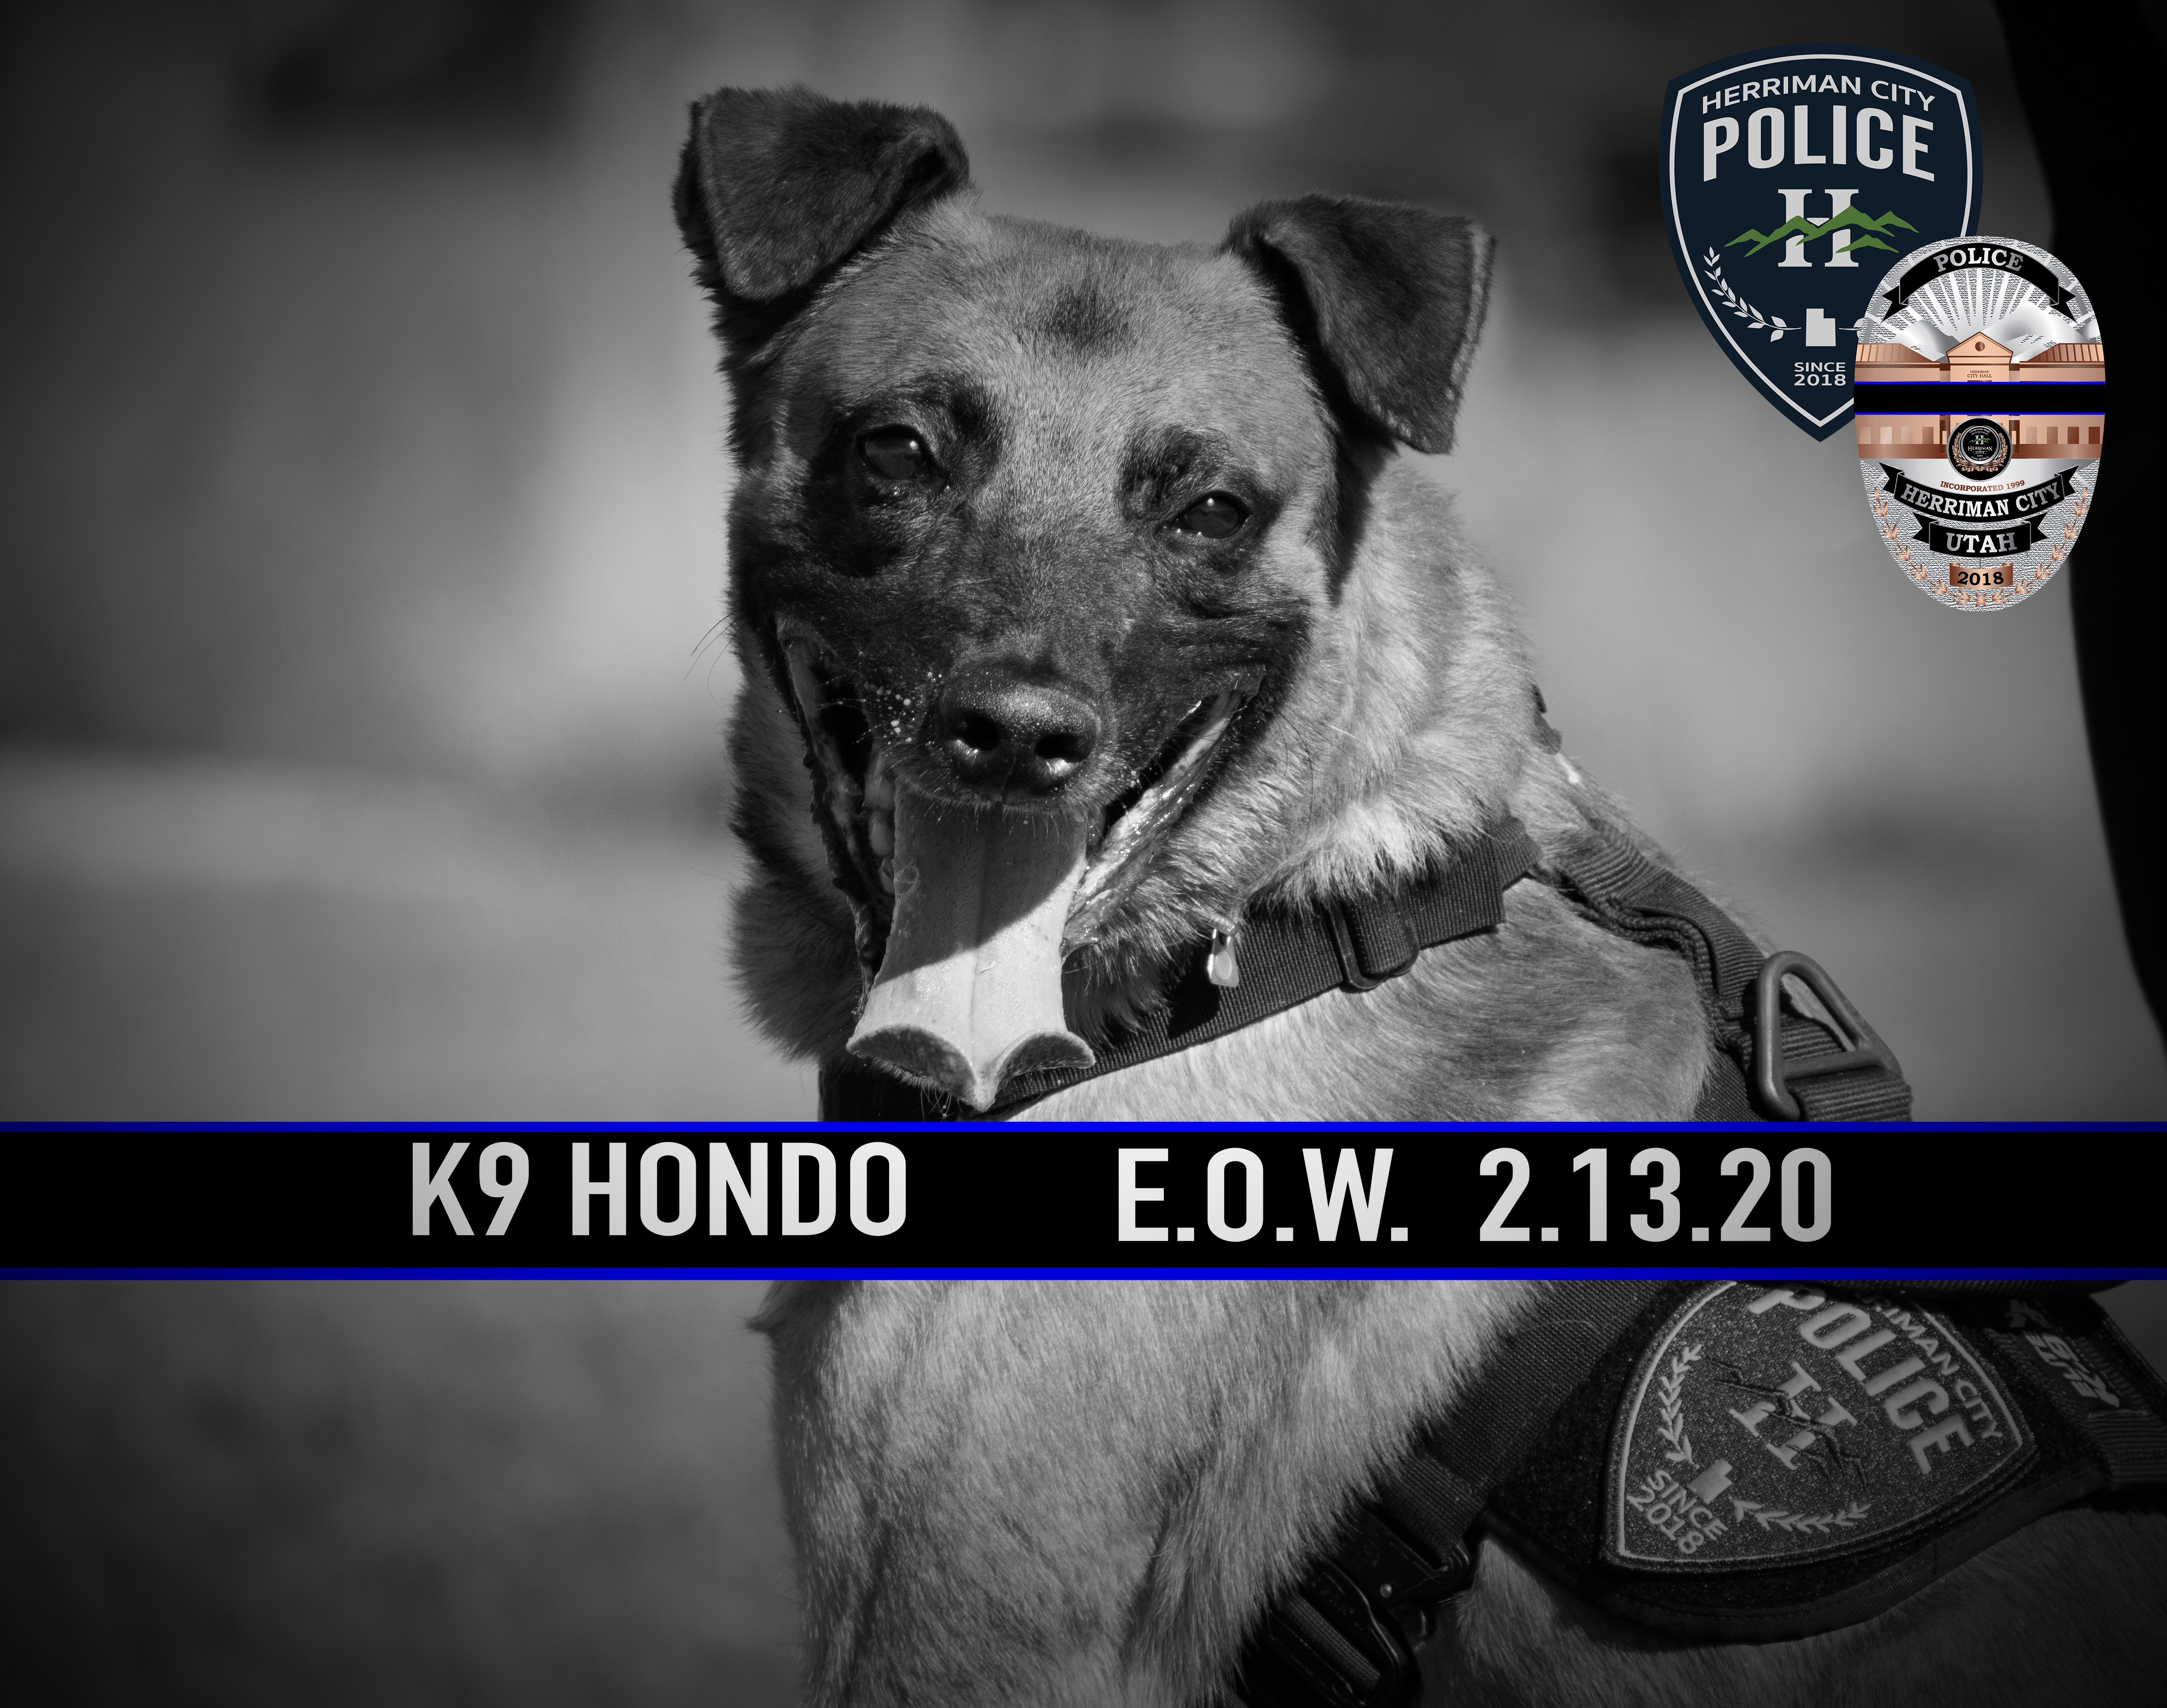 K9 Hondo was killed in the line of duty during a fugitive apprehension operation in Salt Lake City on Feb. 13, 2020. (Photo courtesy Herriman City PD)